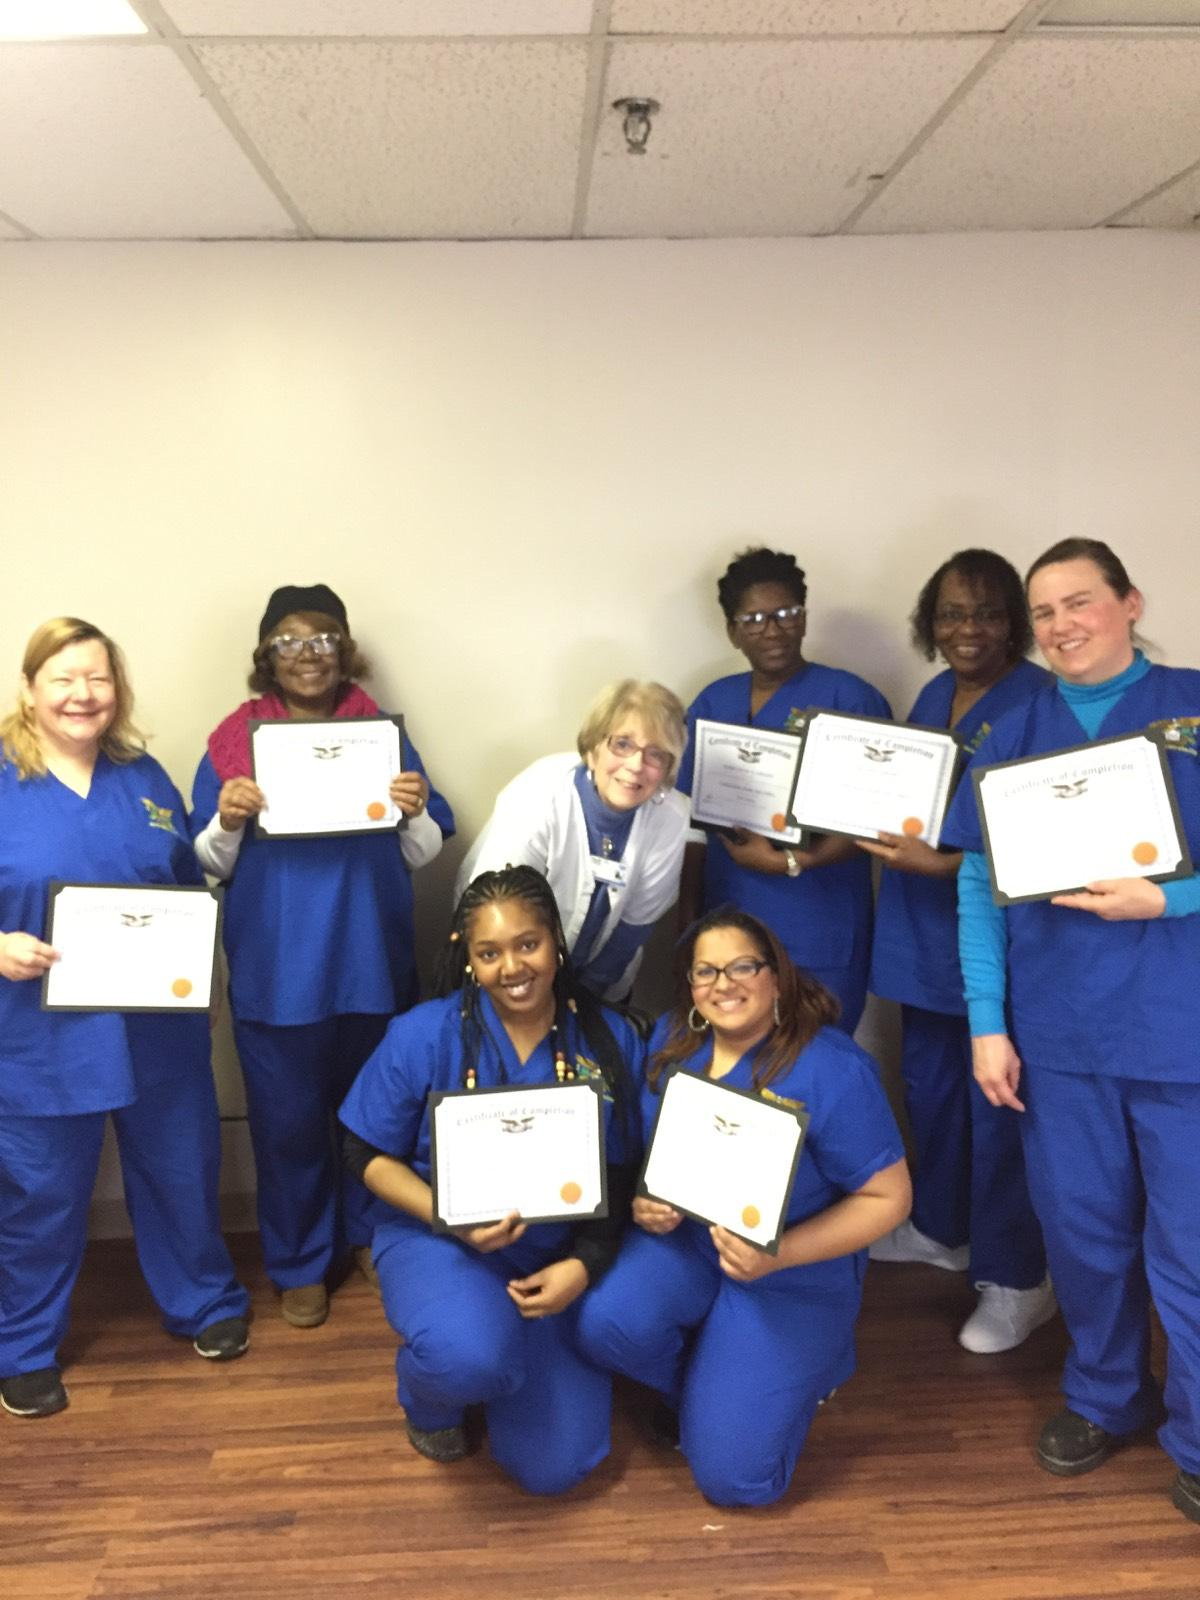 Congratulations to the Certified Home Health Aide Class of February 2018 in South Plainfield